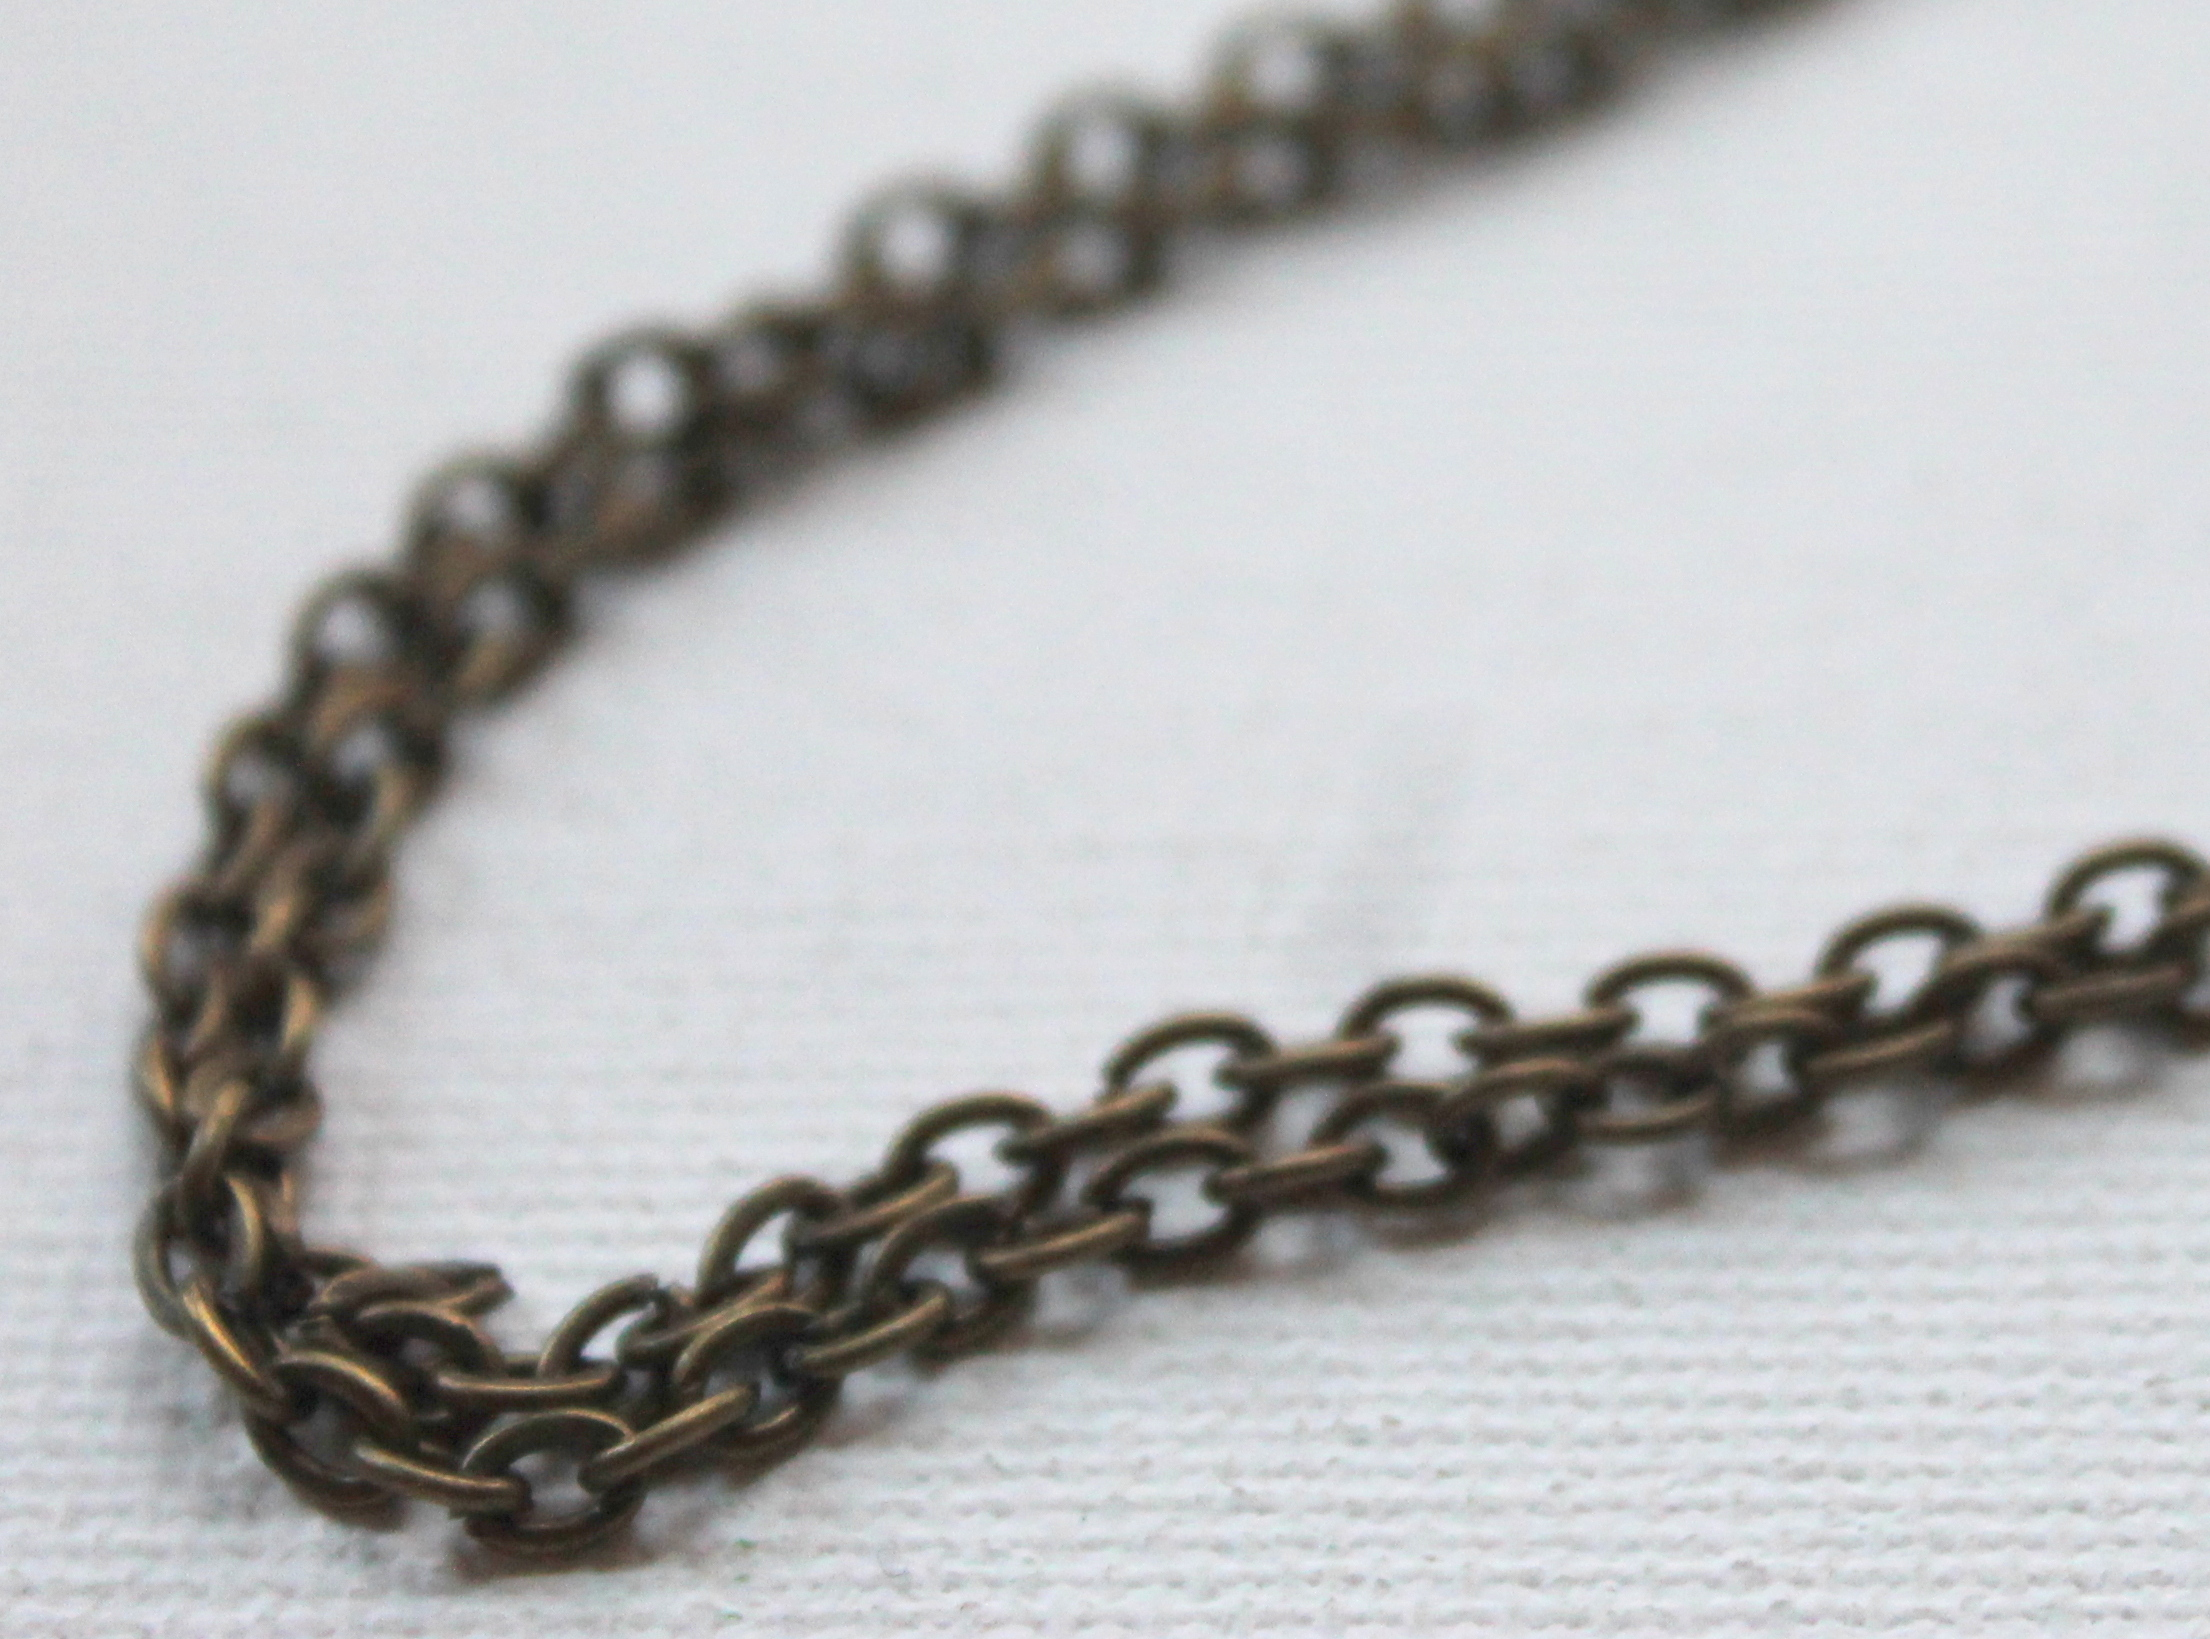 Dangle Chain Necklace Tutorial | Emerging Creatively Jewelry Tutorials